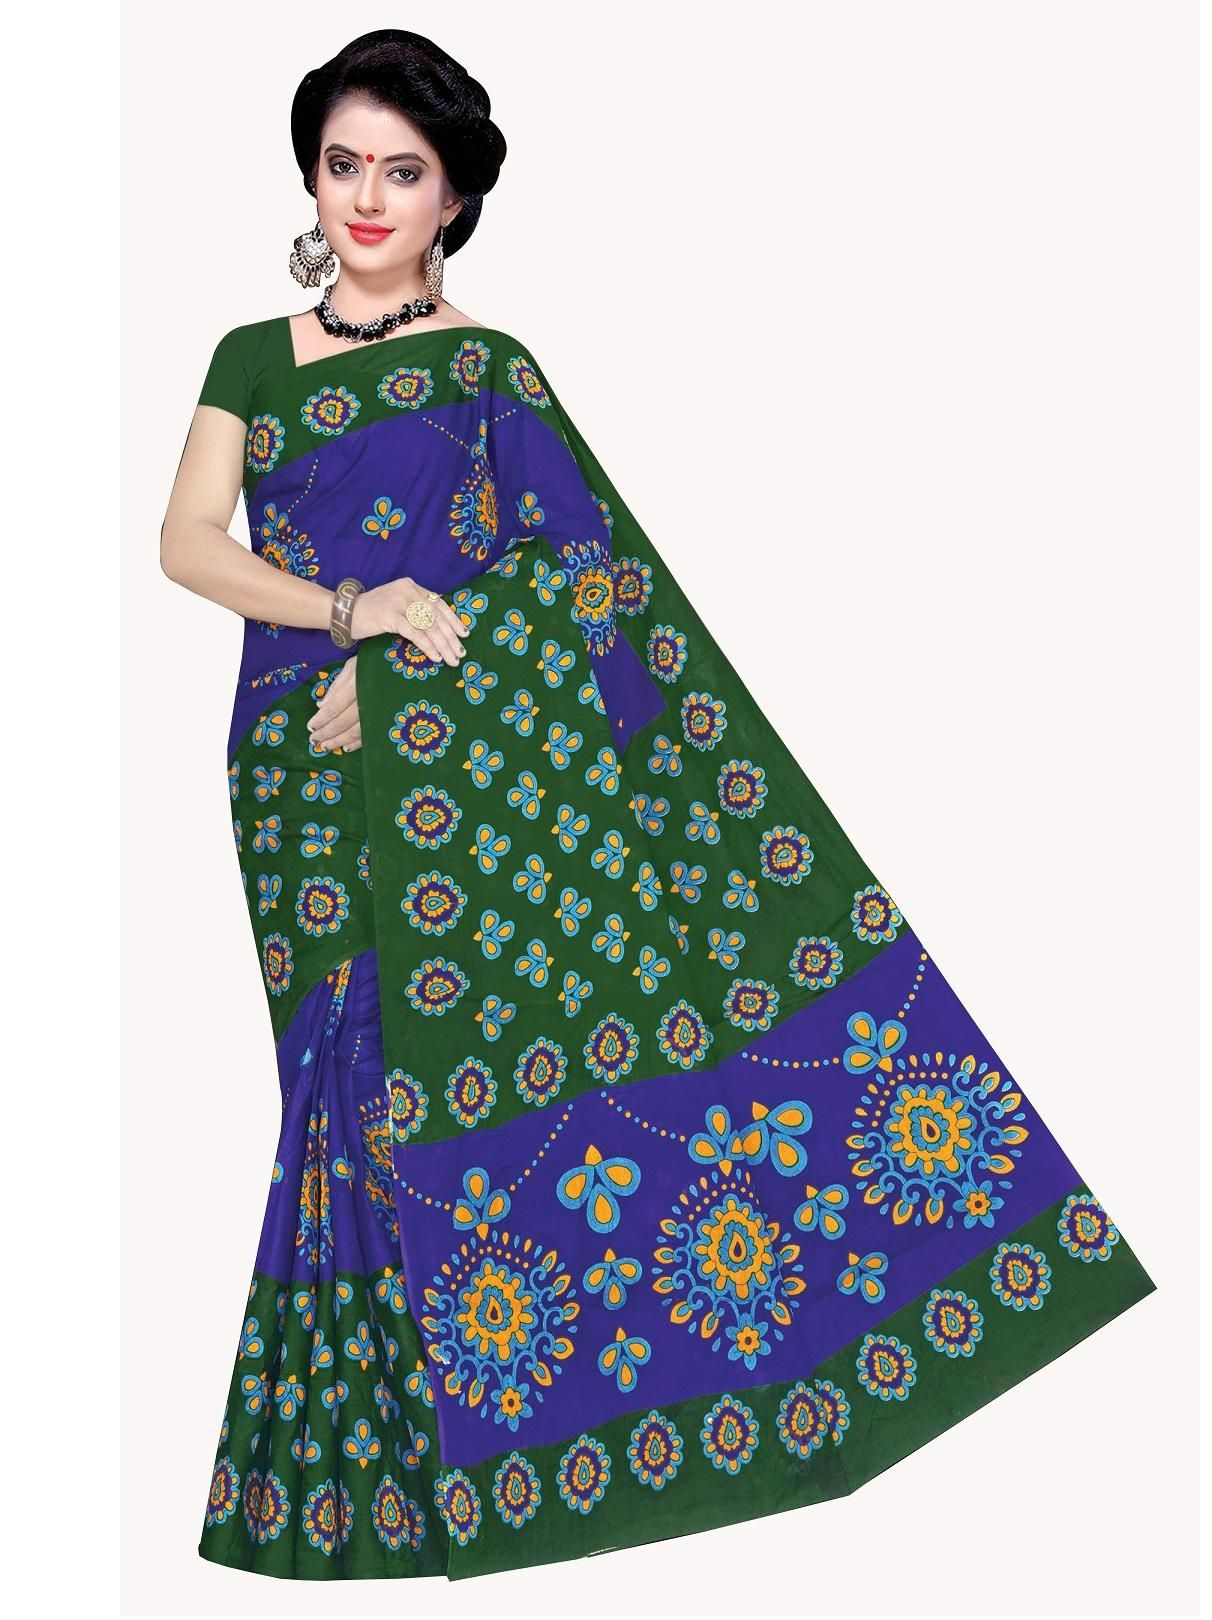 Women's Valuable Green Cotton Printed Regular Saree With Blouse Piece